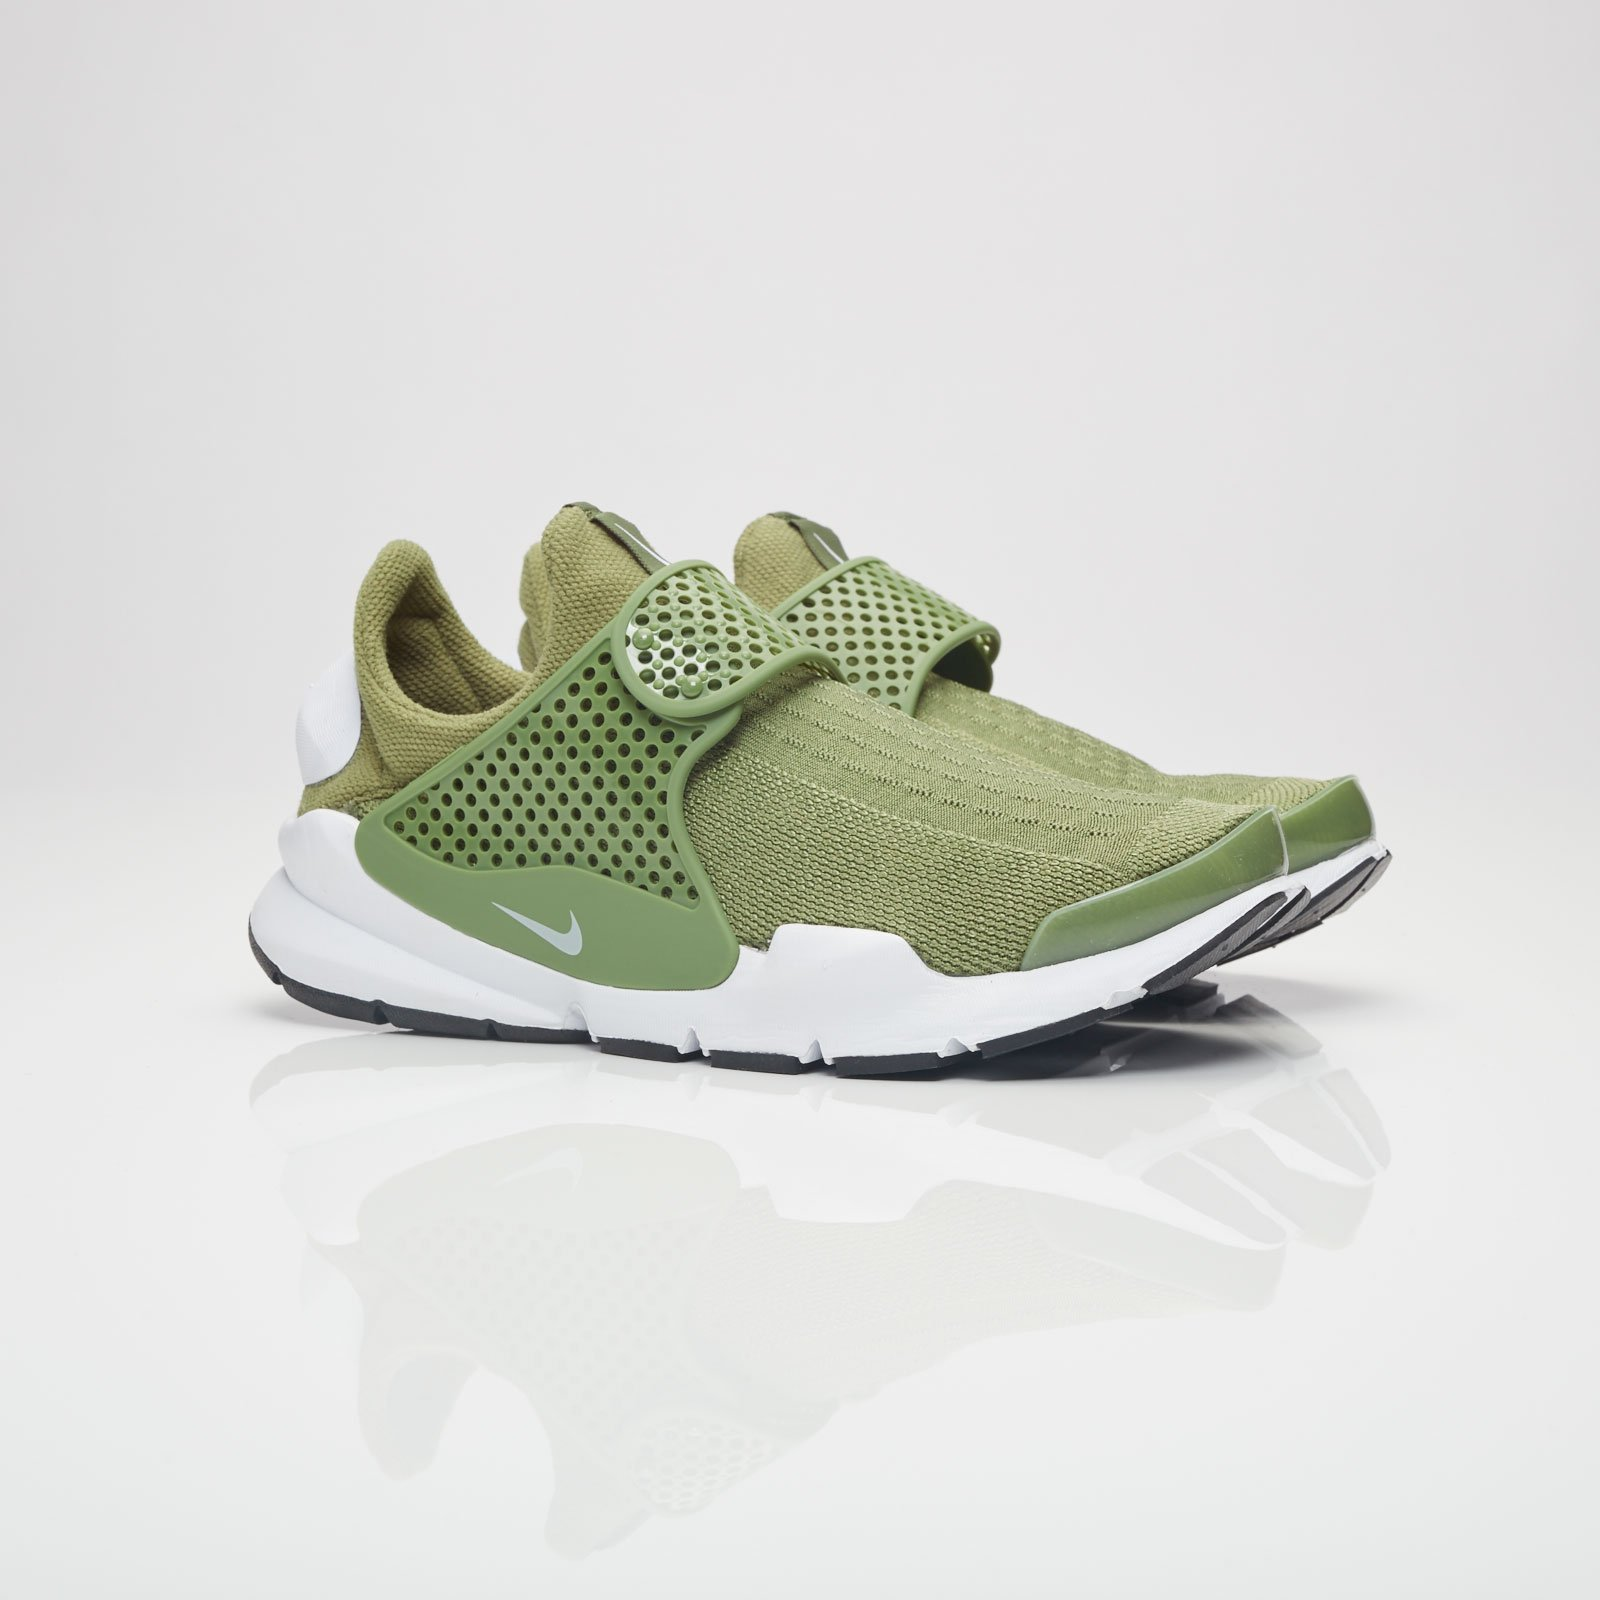 separation shoes c2d65 f855b Nike Sportswear Wmns Sock Dart